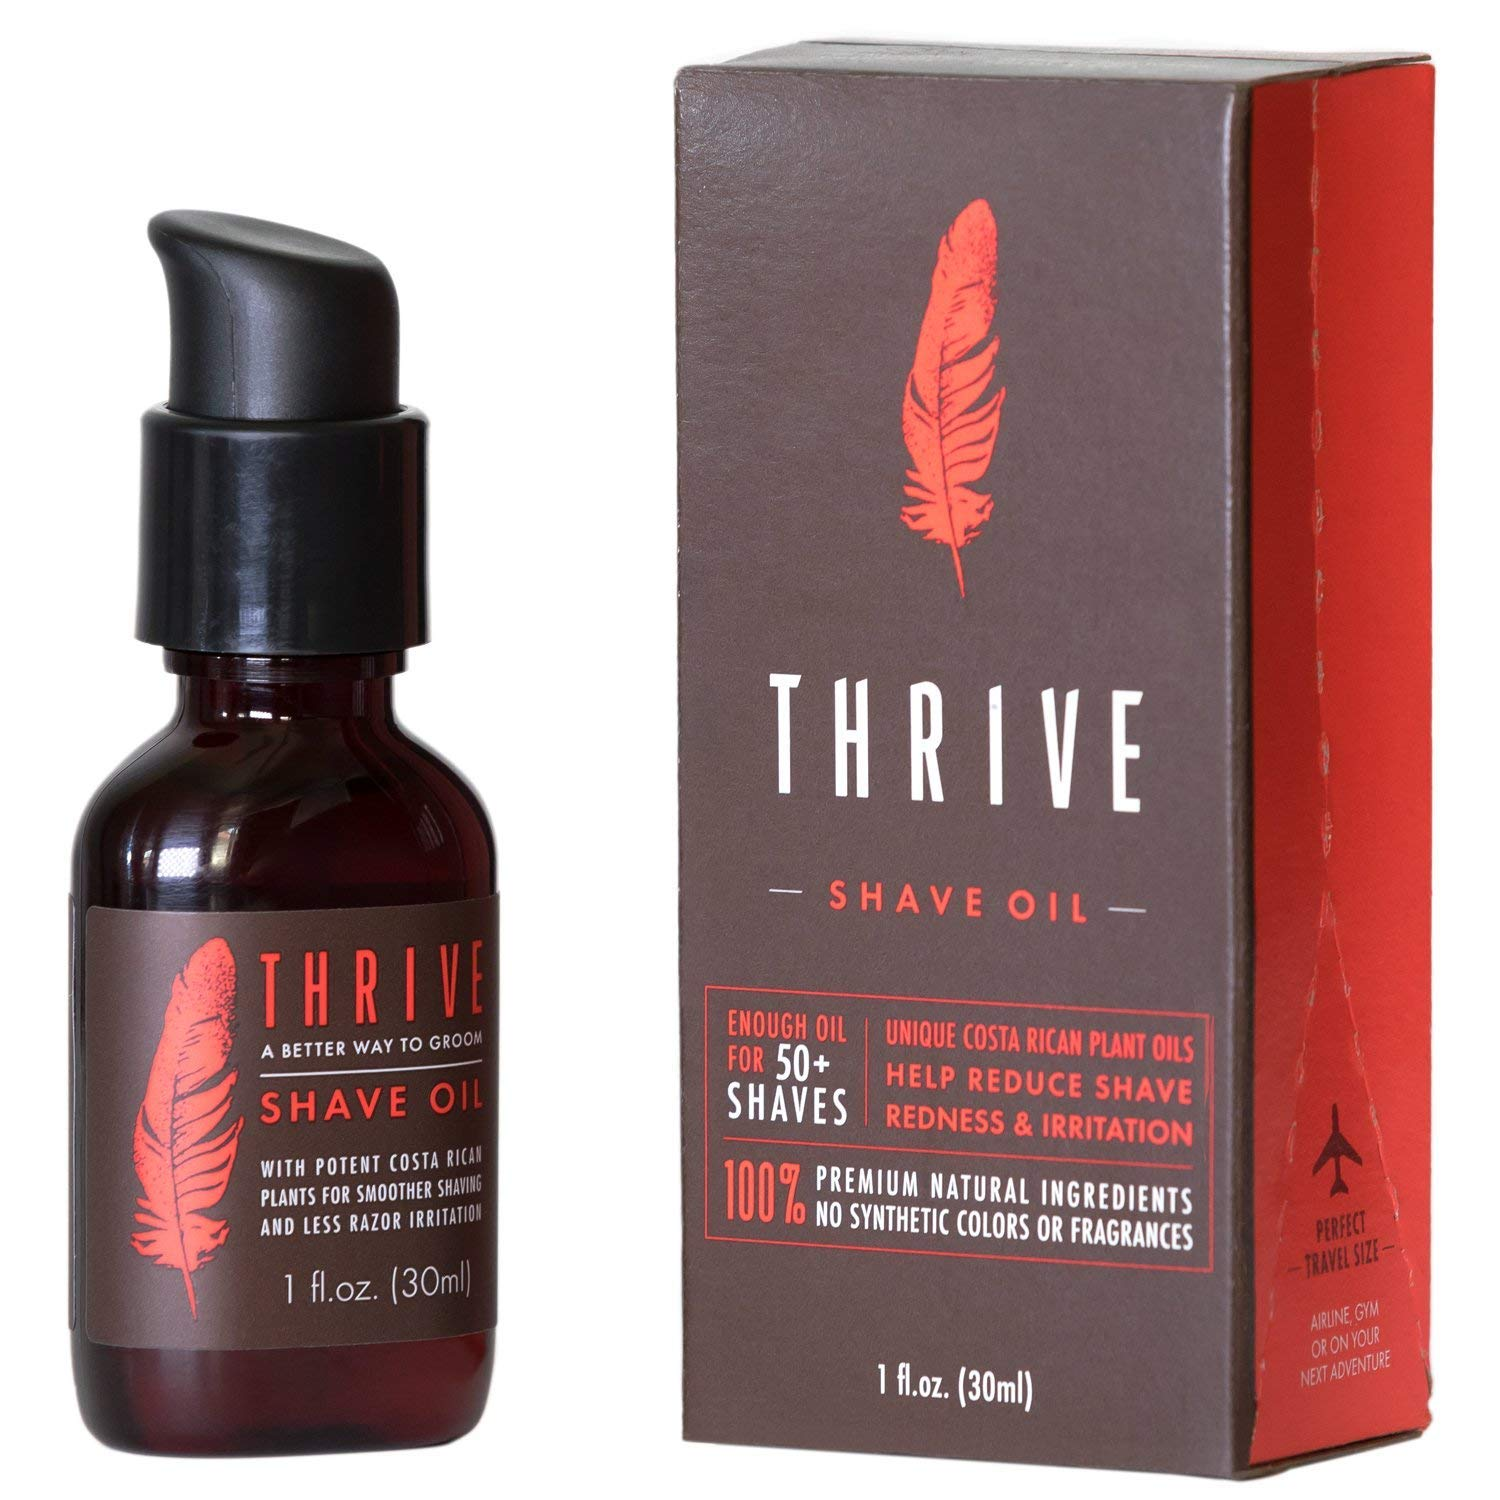 Thrive Natural Shave Oil for Men - Replaces Pre-Shave Oils, Shaving Creams, Gels, and Foams; Made with Organic and Unique Premium Natural Ingredients for Healthier Skin - 30ml /1 oz Thrive Natural Care 852200000000